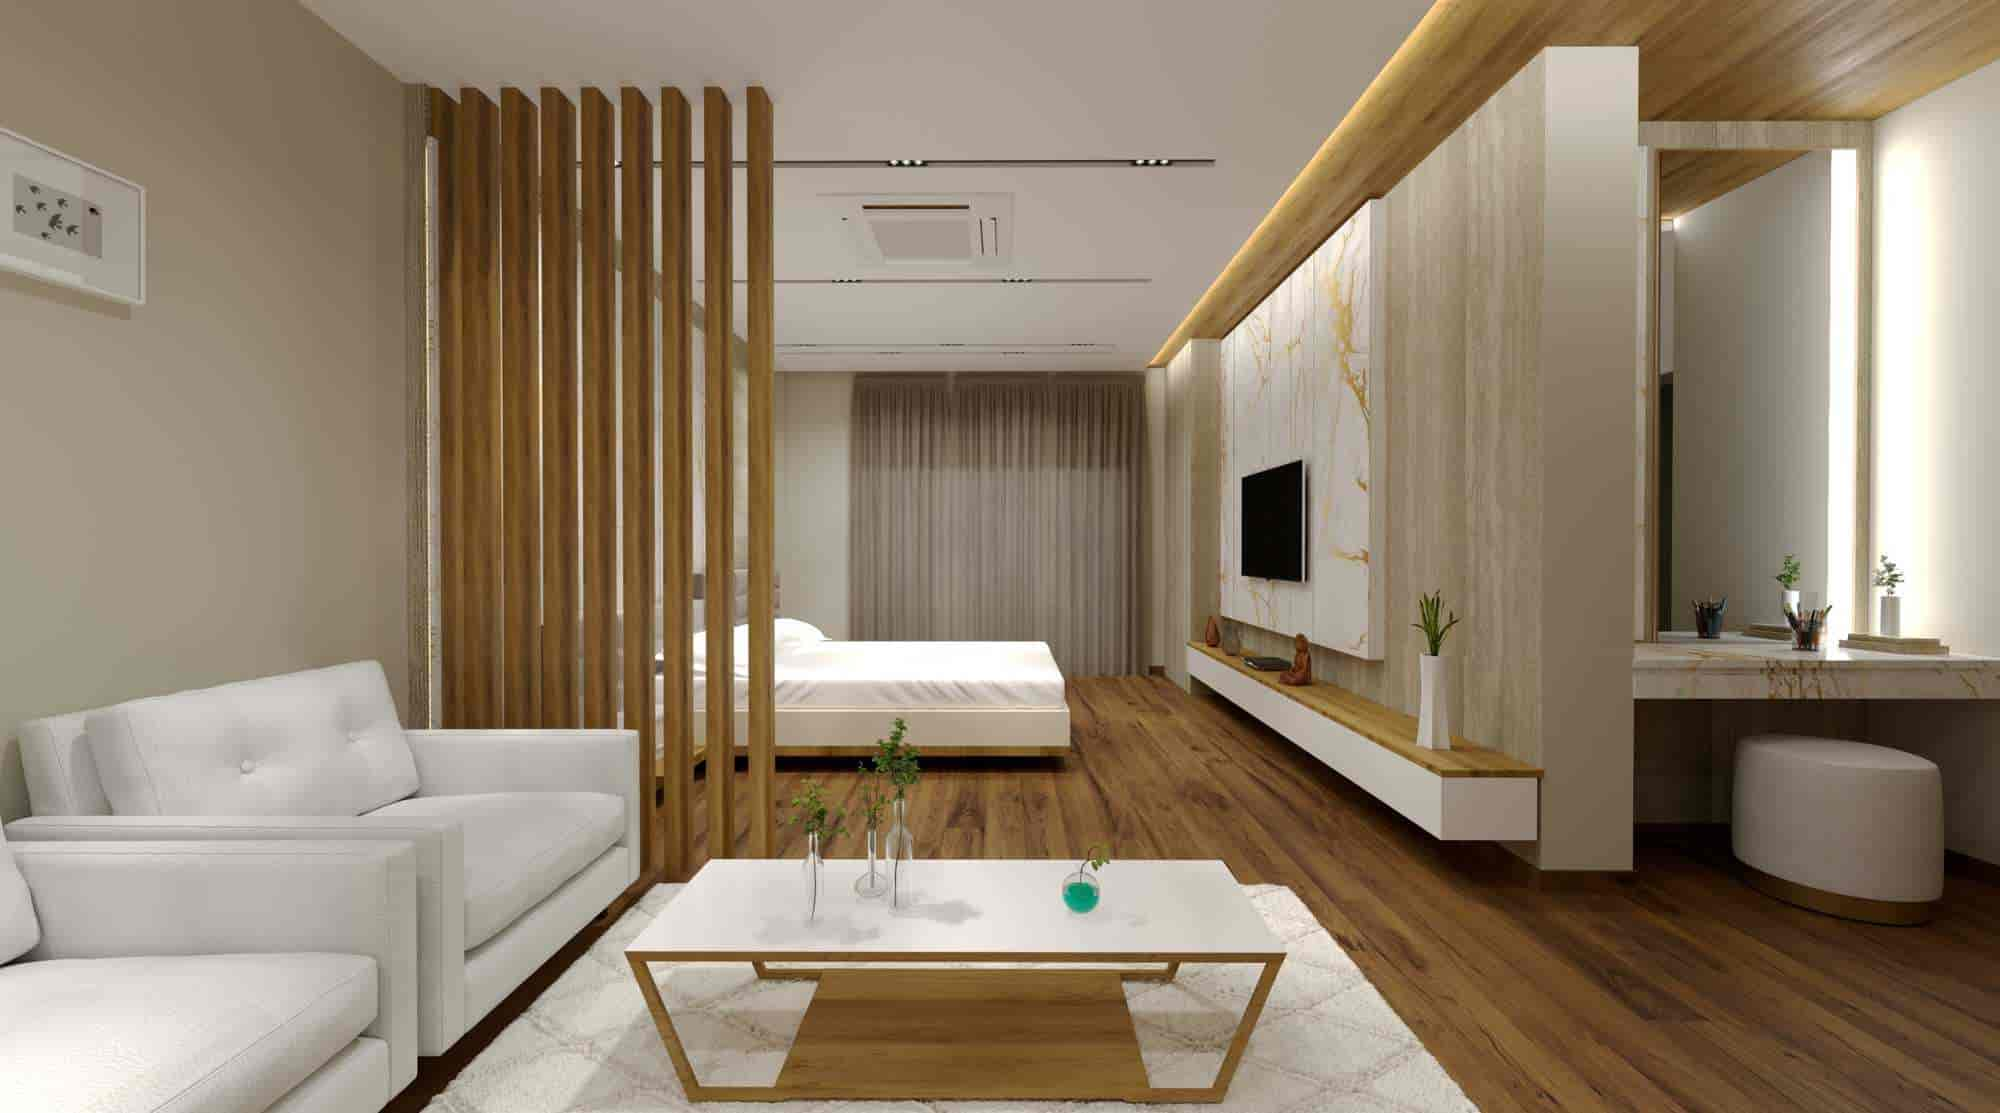 Top 100 Interior Designers For Bedroom In Ahmedabad Justdial